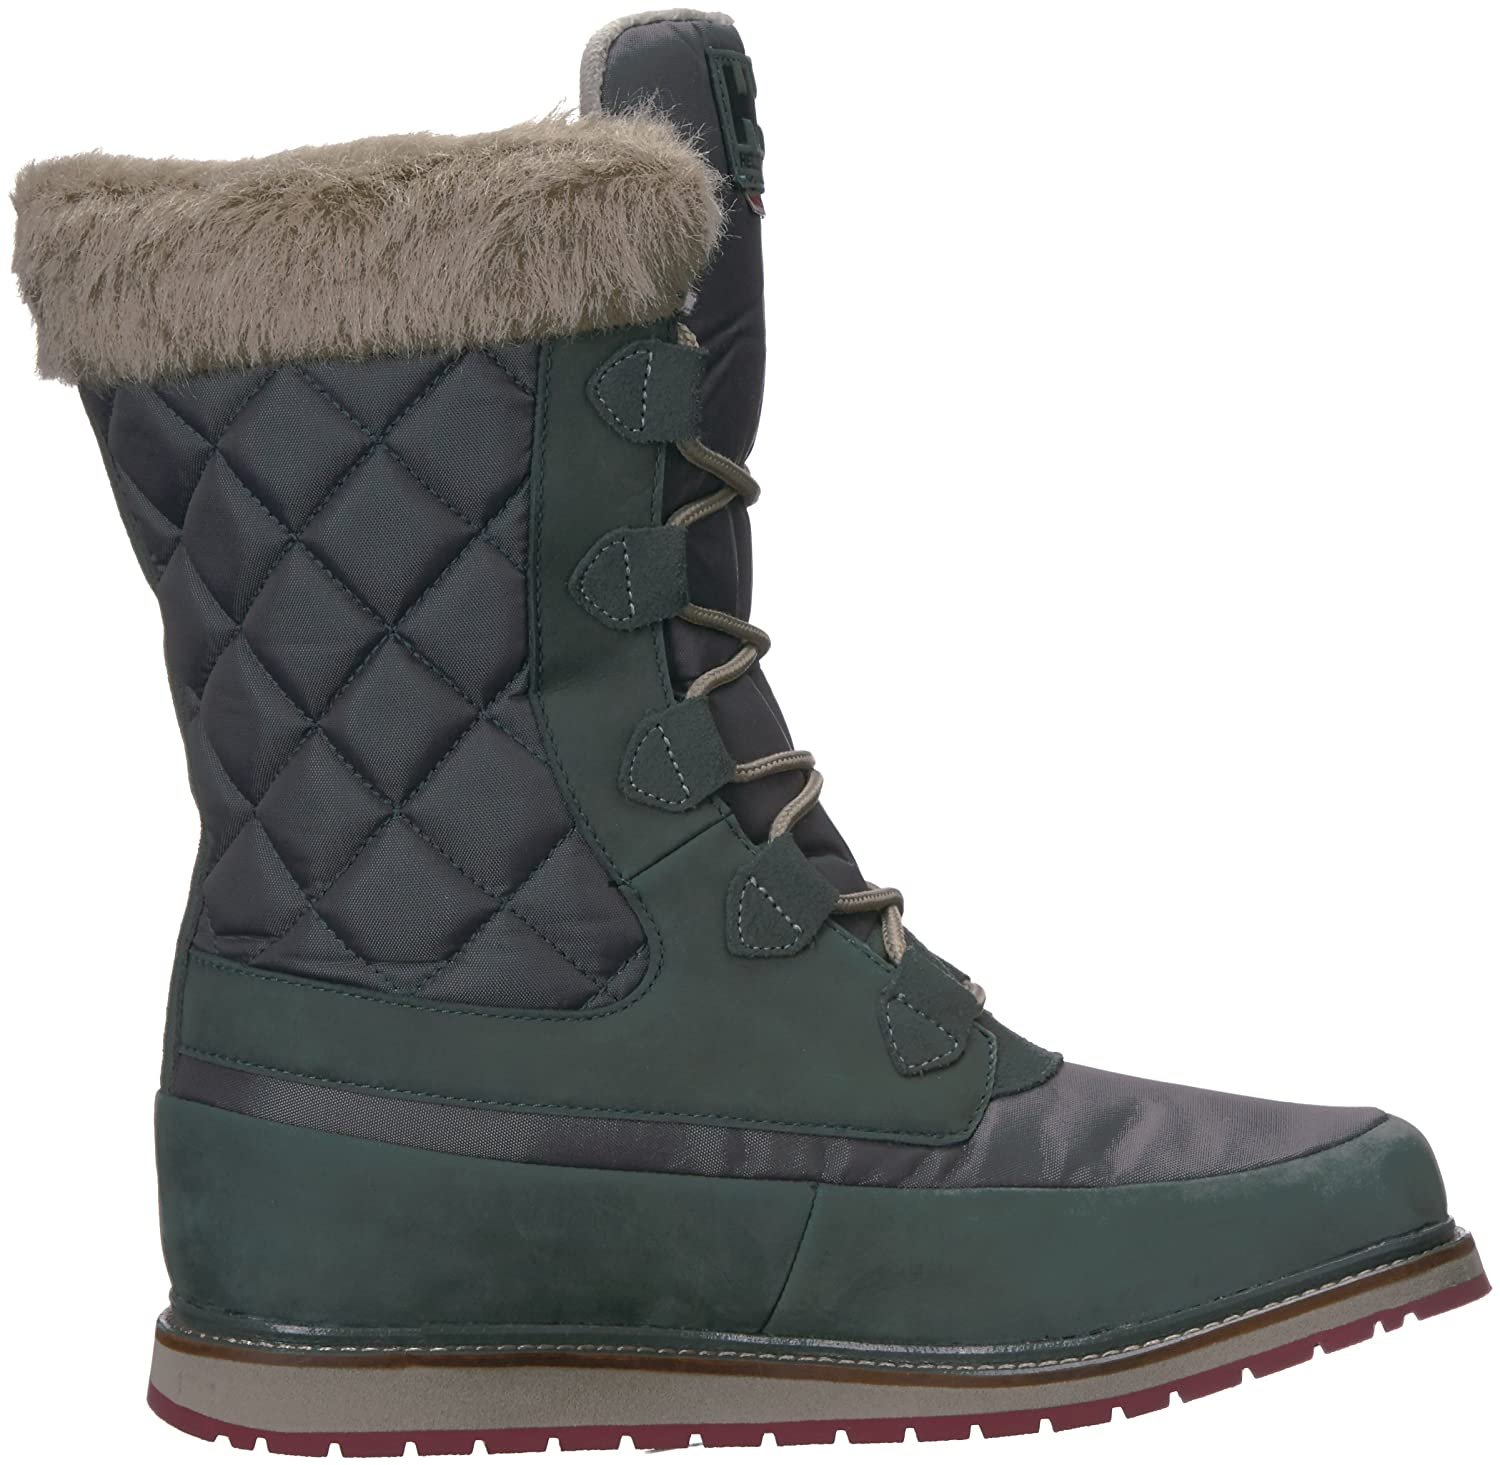 Helly Hansen Women's Arosa HT Winter Boot B01MUVVW8T 10 B(M) US|Darkest Spruce/Rock/La